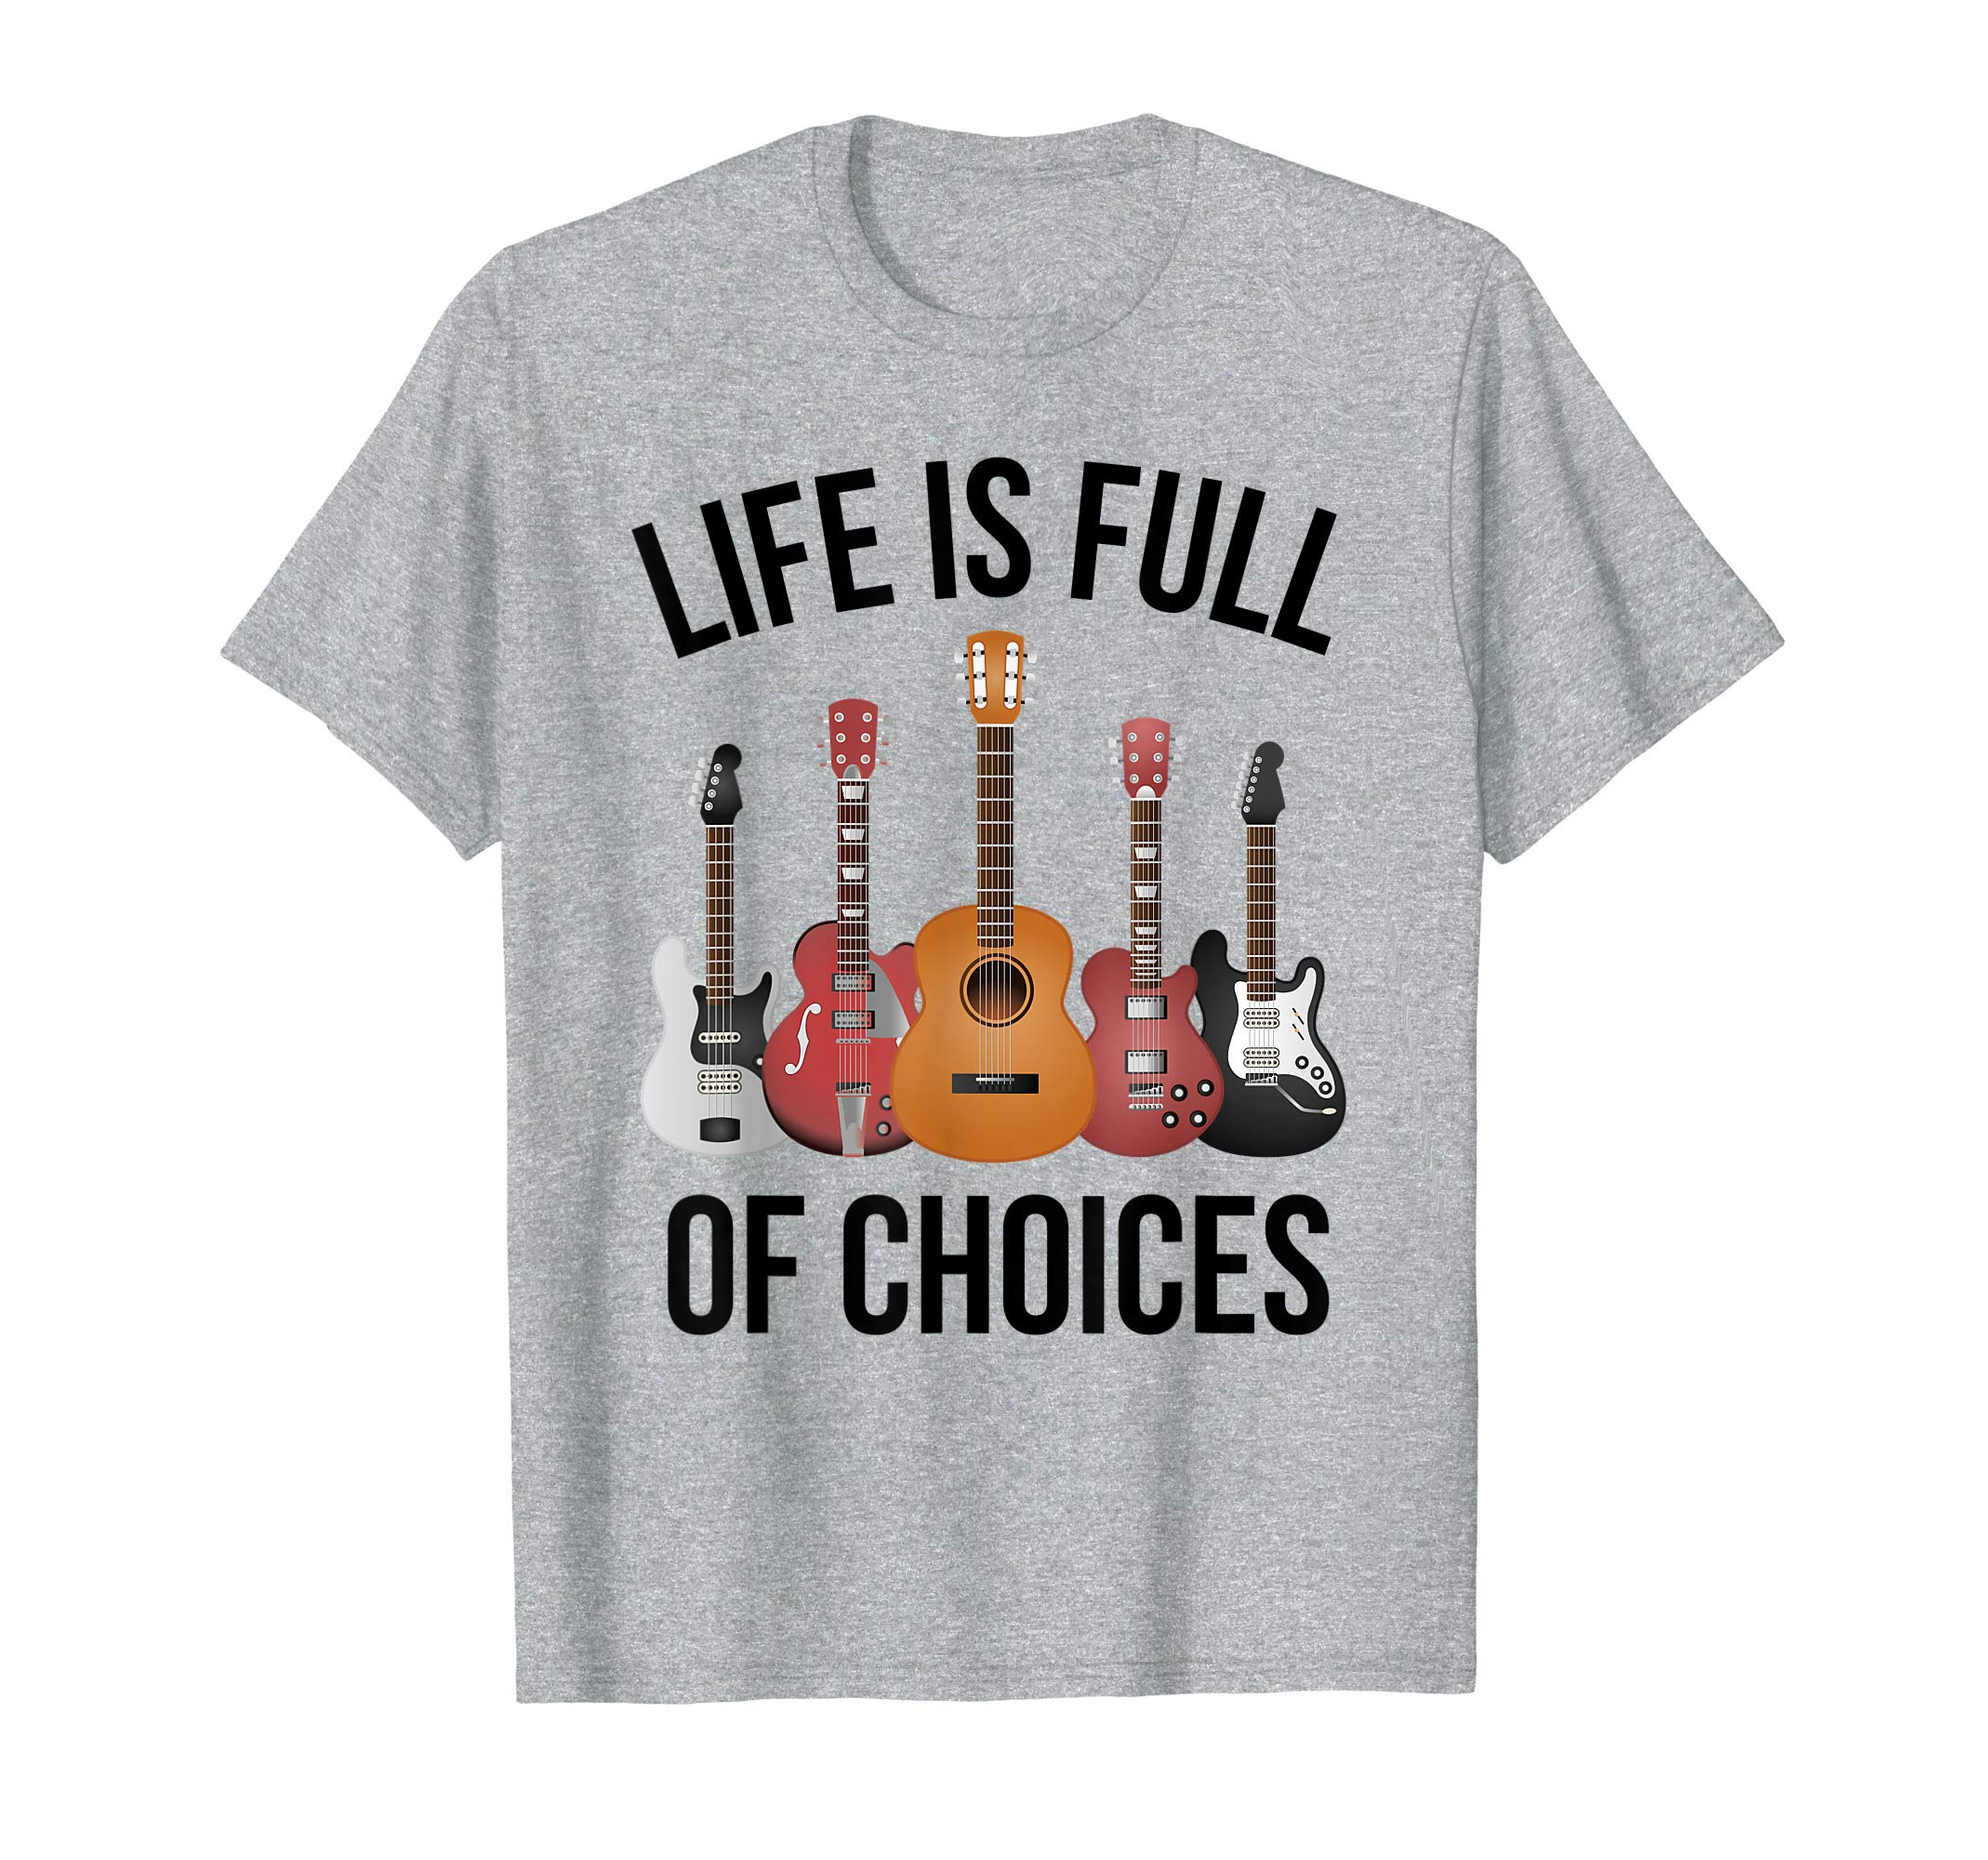 Guitar Gift for Guitar Players Who Own Lots of Guitars T-Shirt by Graysen Guitar T Shirts Gifts